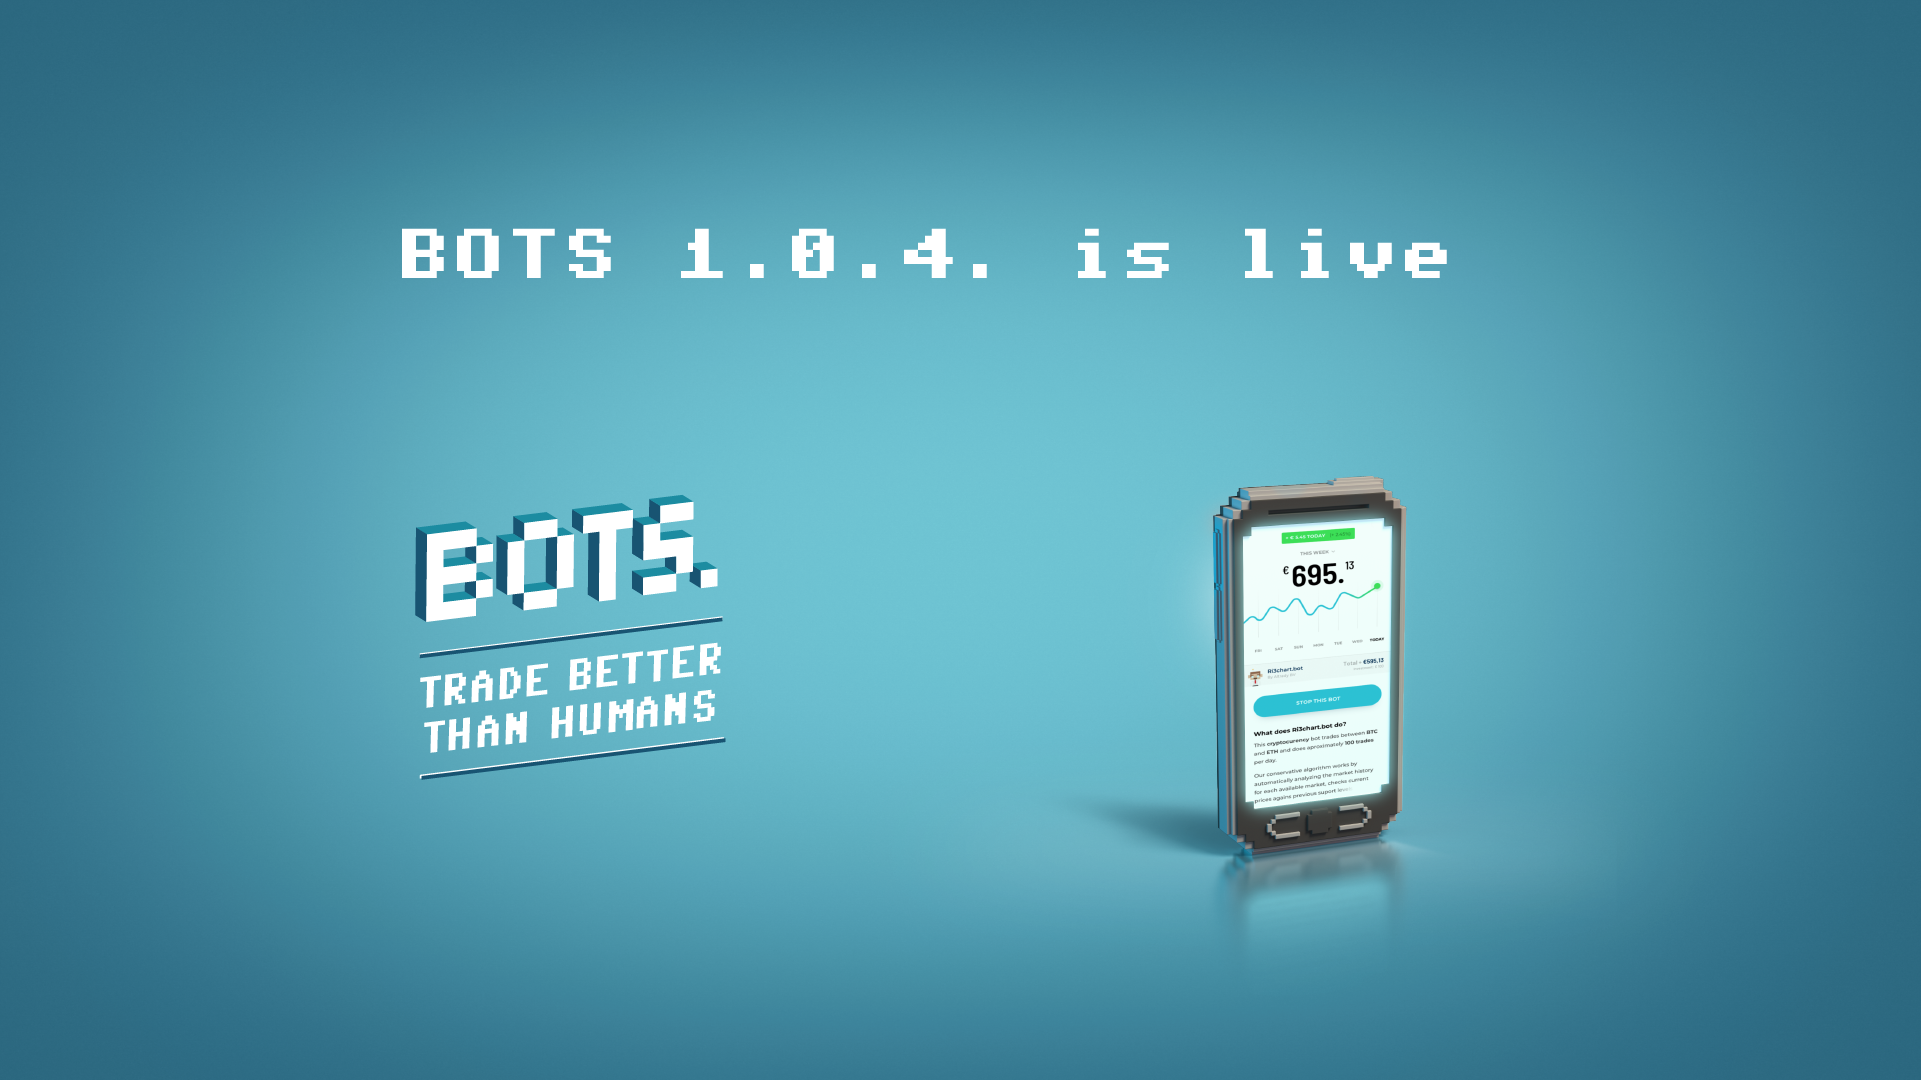 BOTS: Version 1.0.4. is live